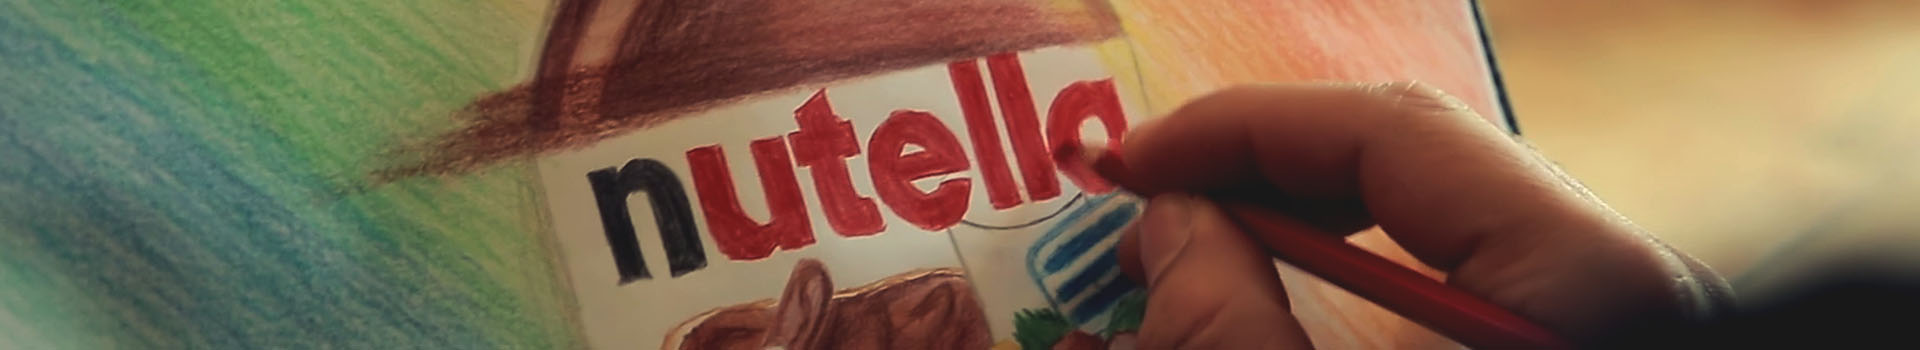 cover-nutella